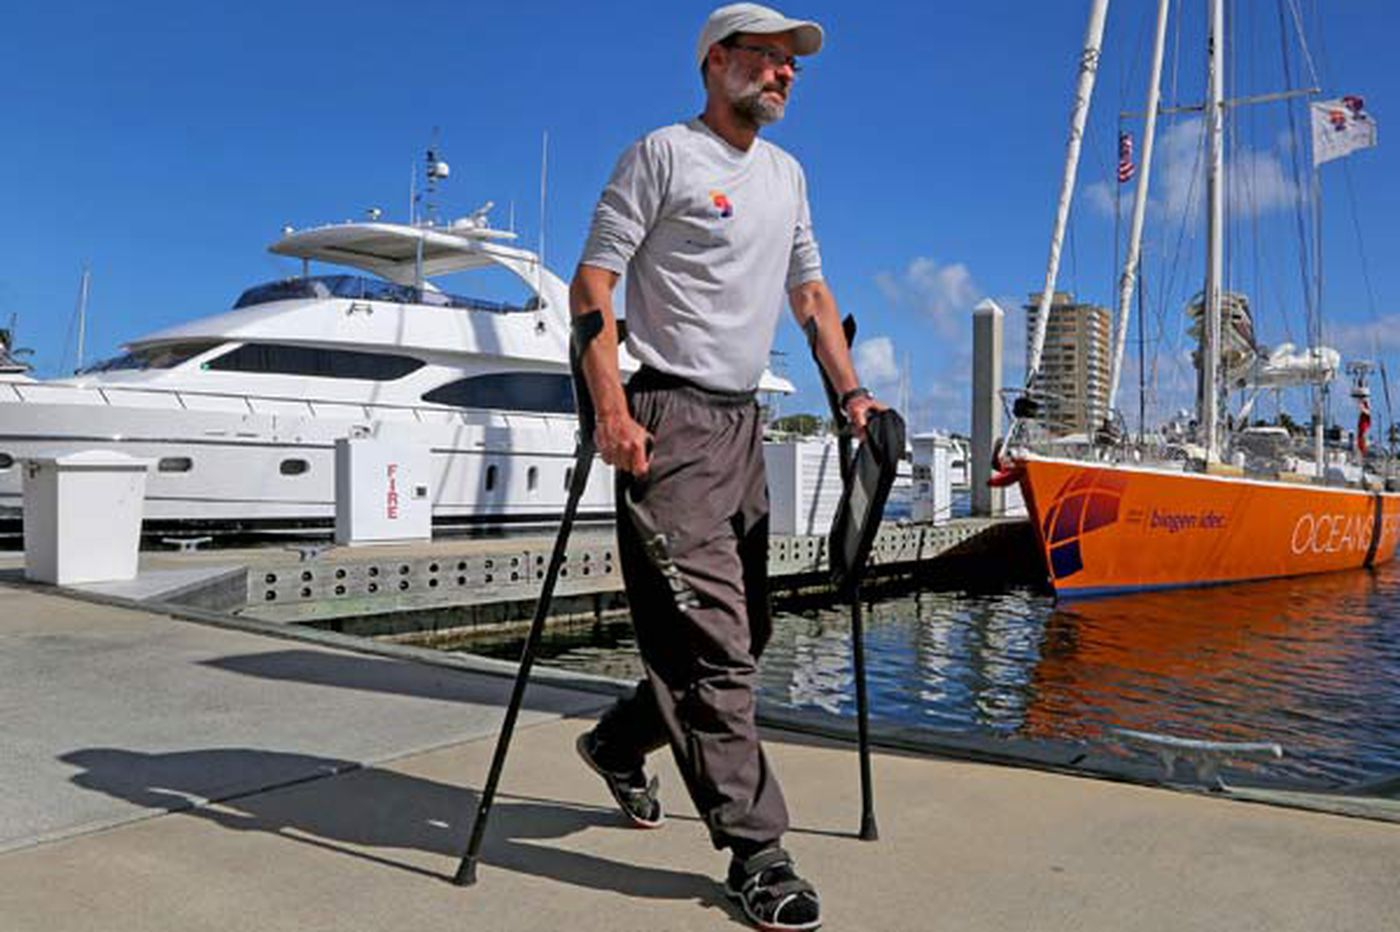 Sailboat crew wants to sink perceptions about abilities of people with MS